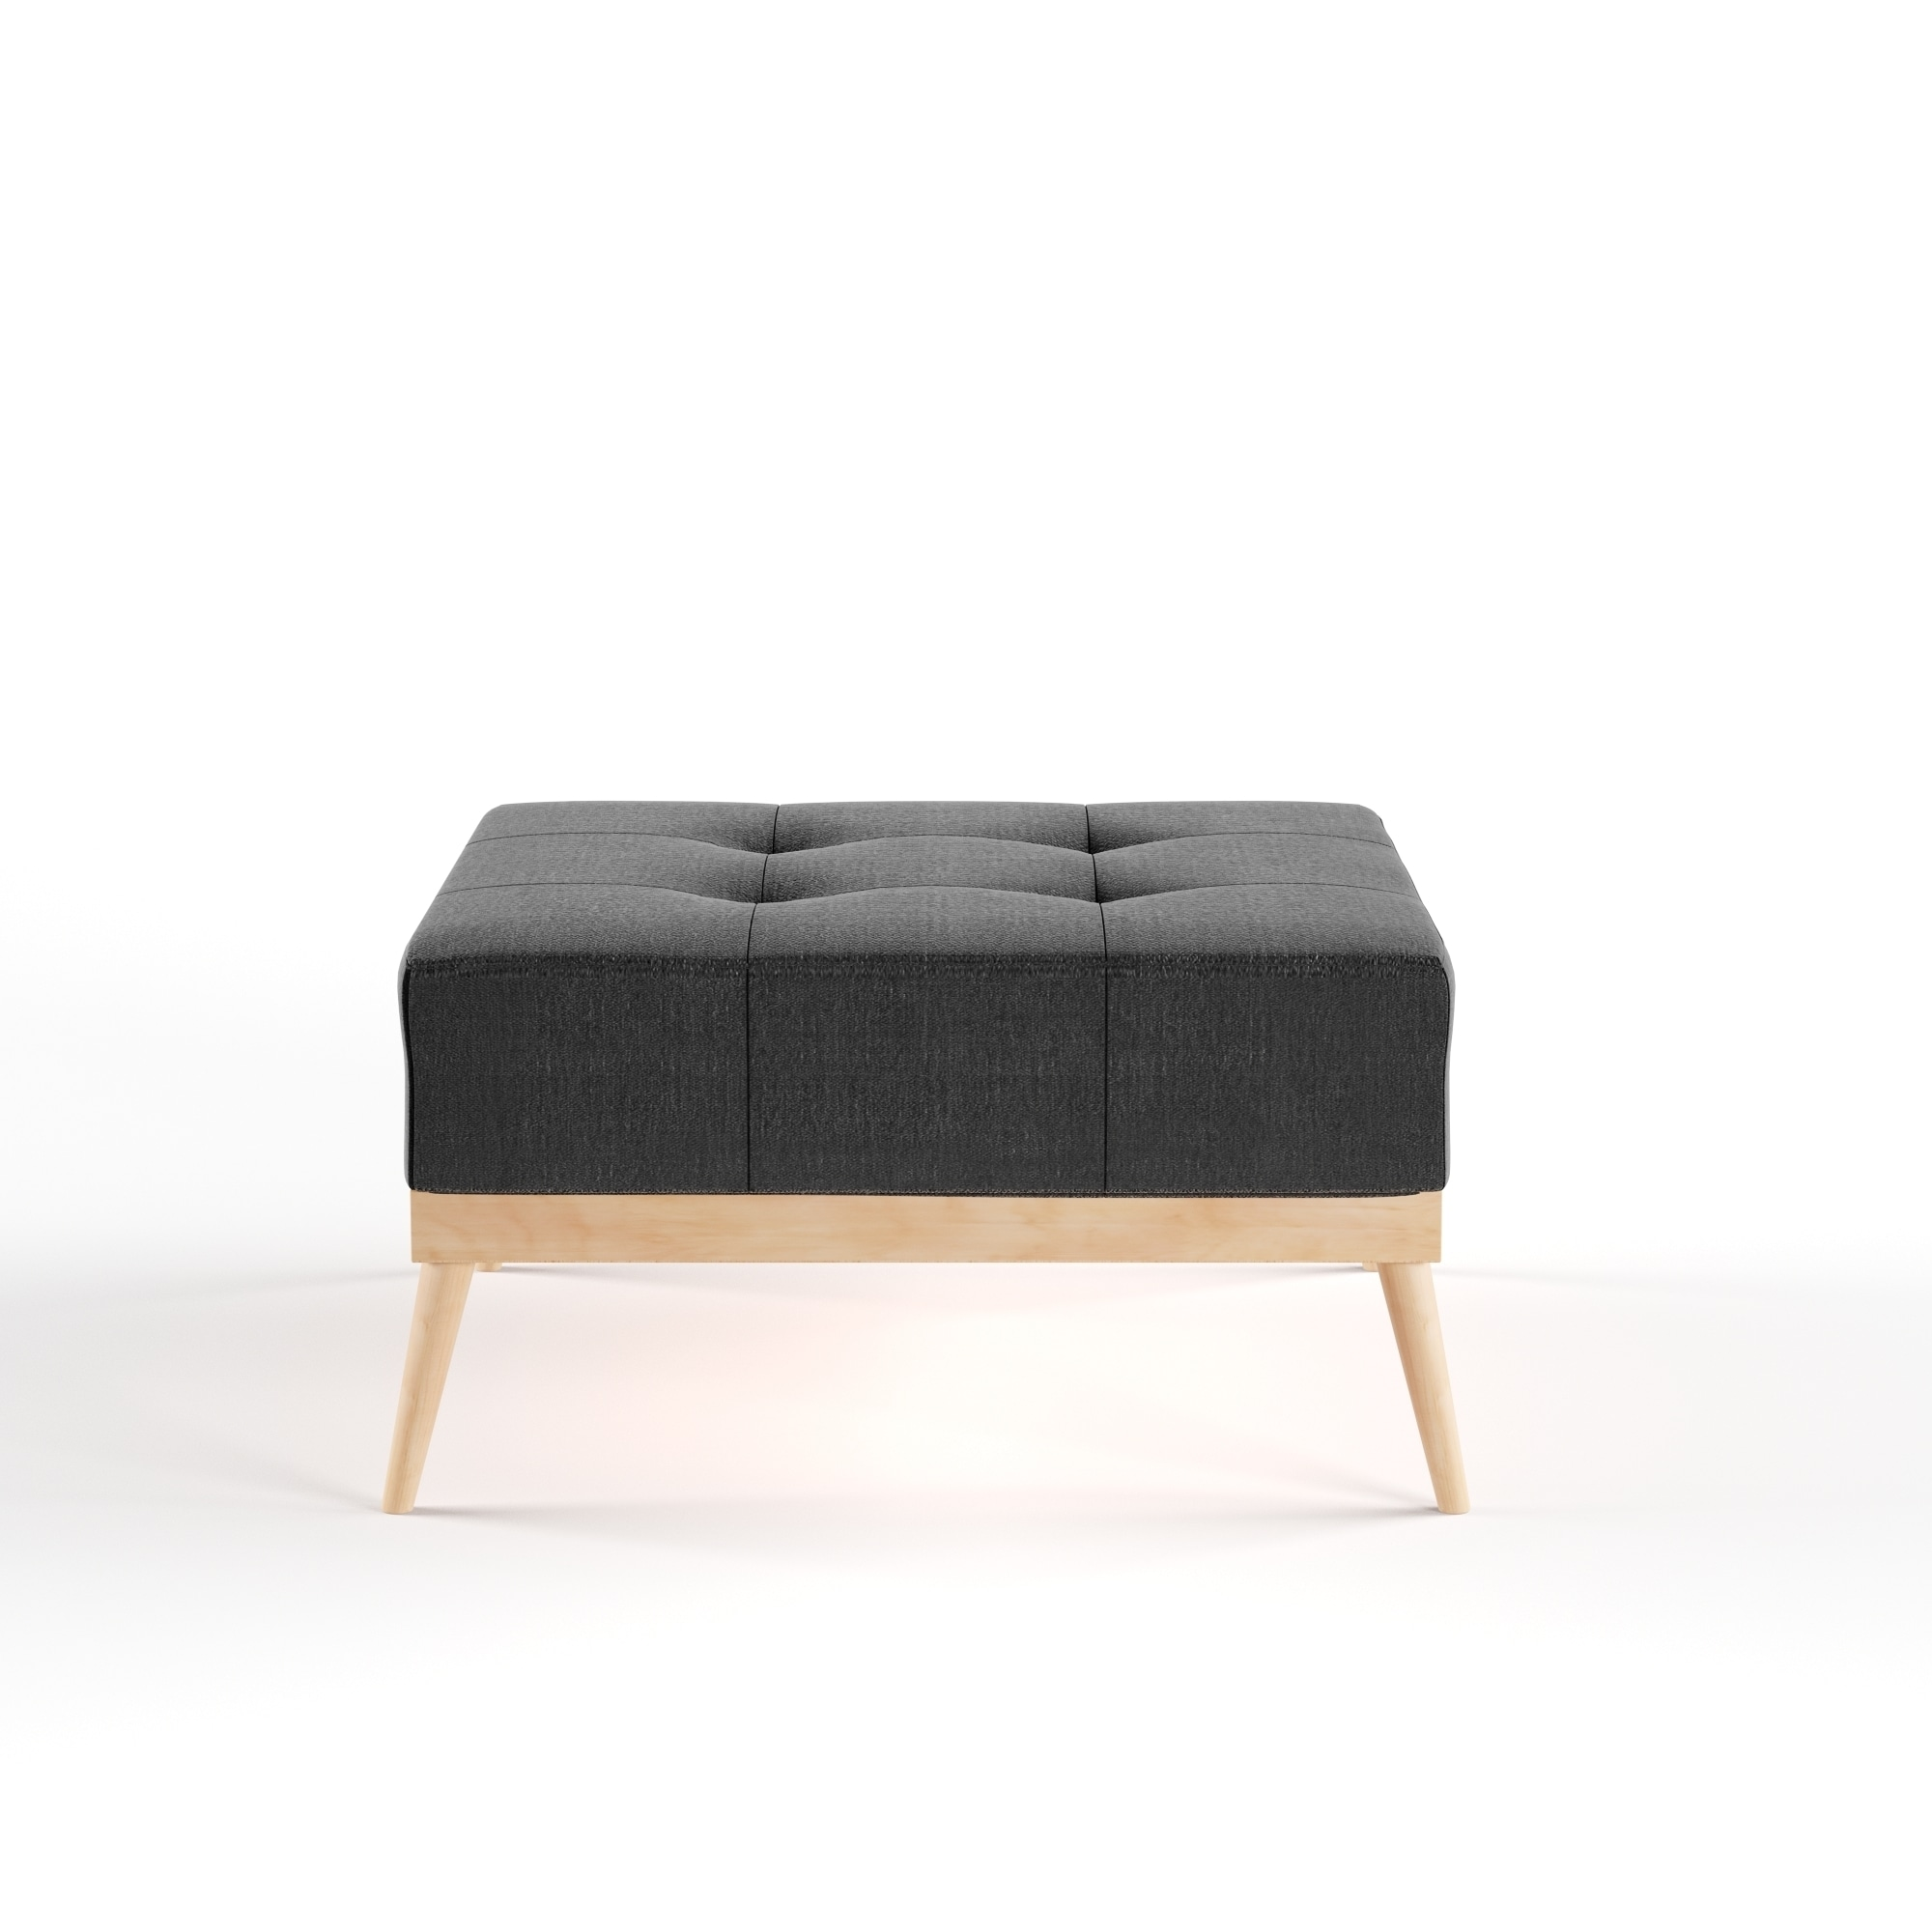 in square with tufted ottoman home ideas remodel luxury